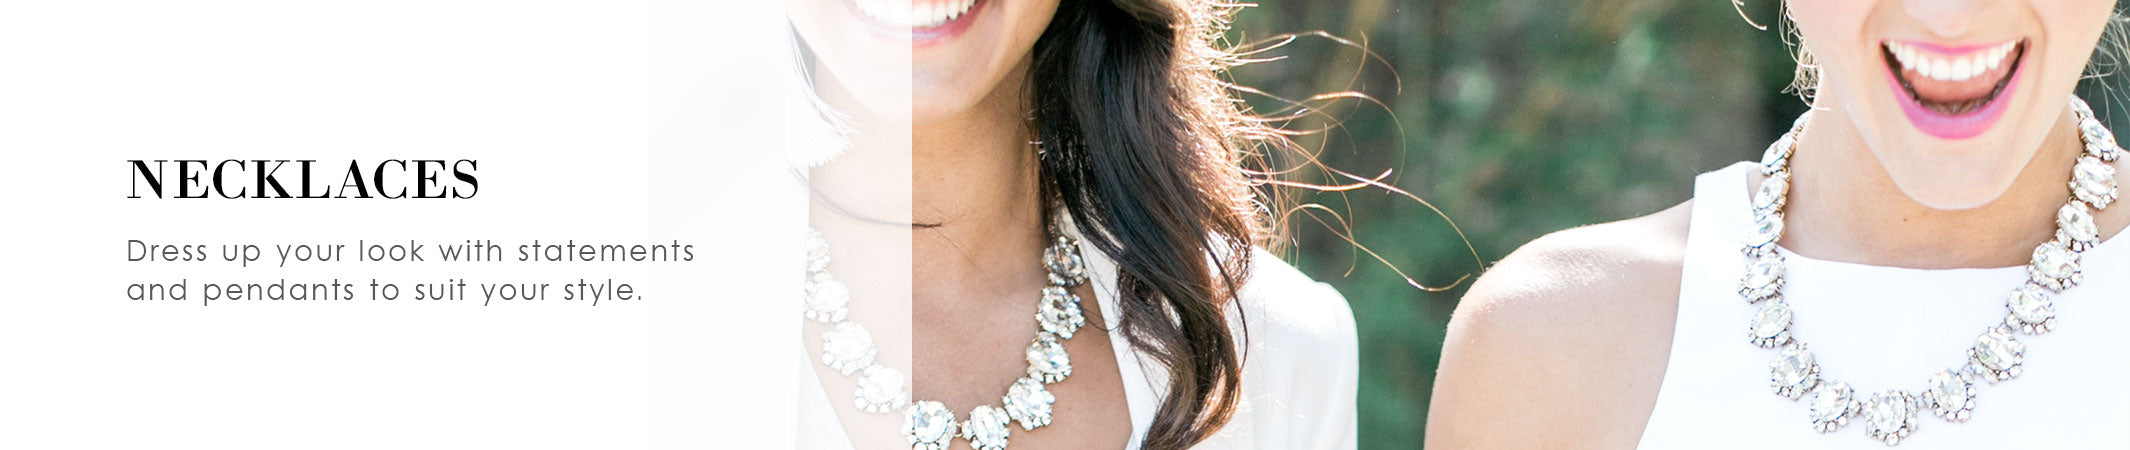 Statement Necklaces and Layering Necklaces | olive + piper